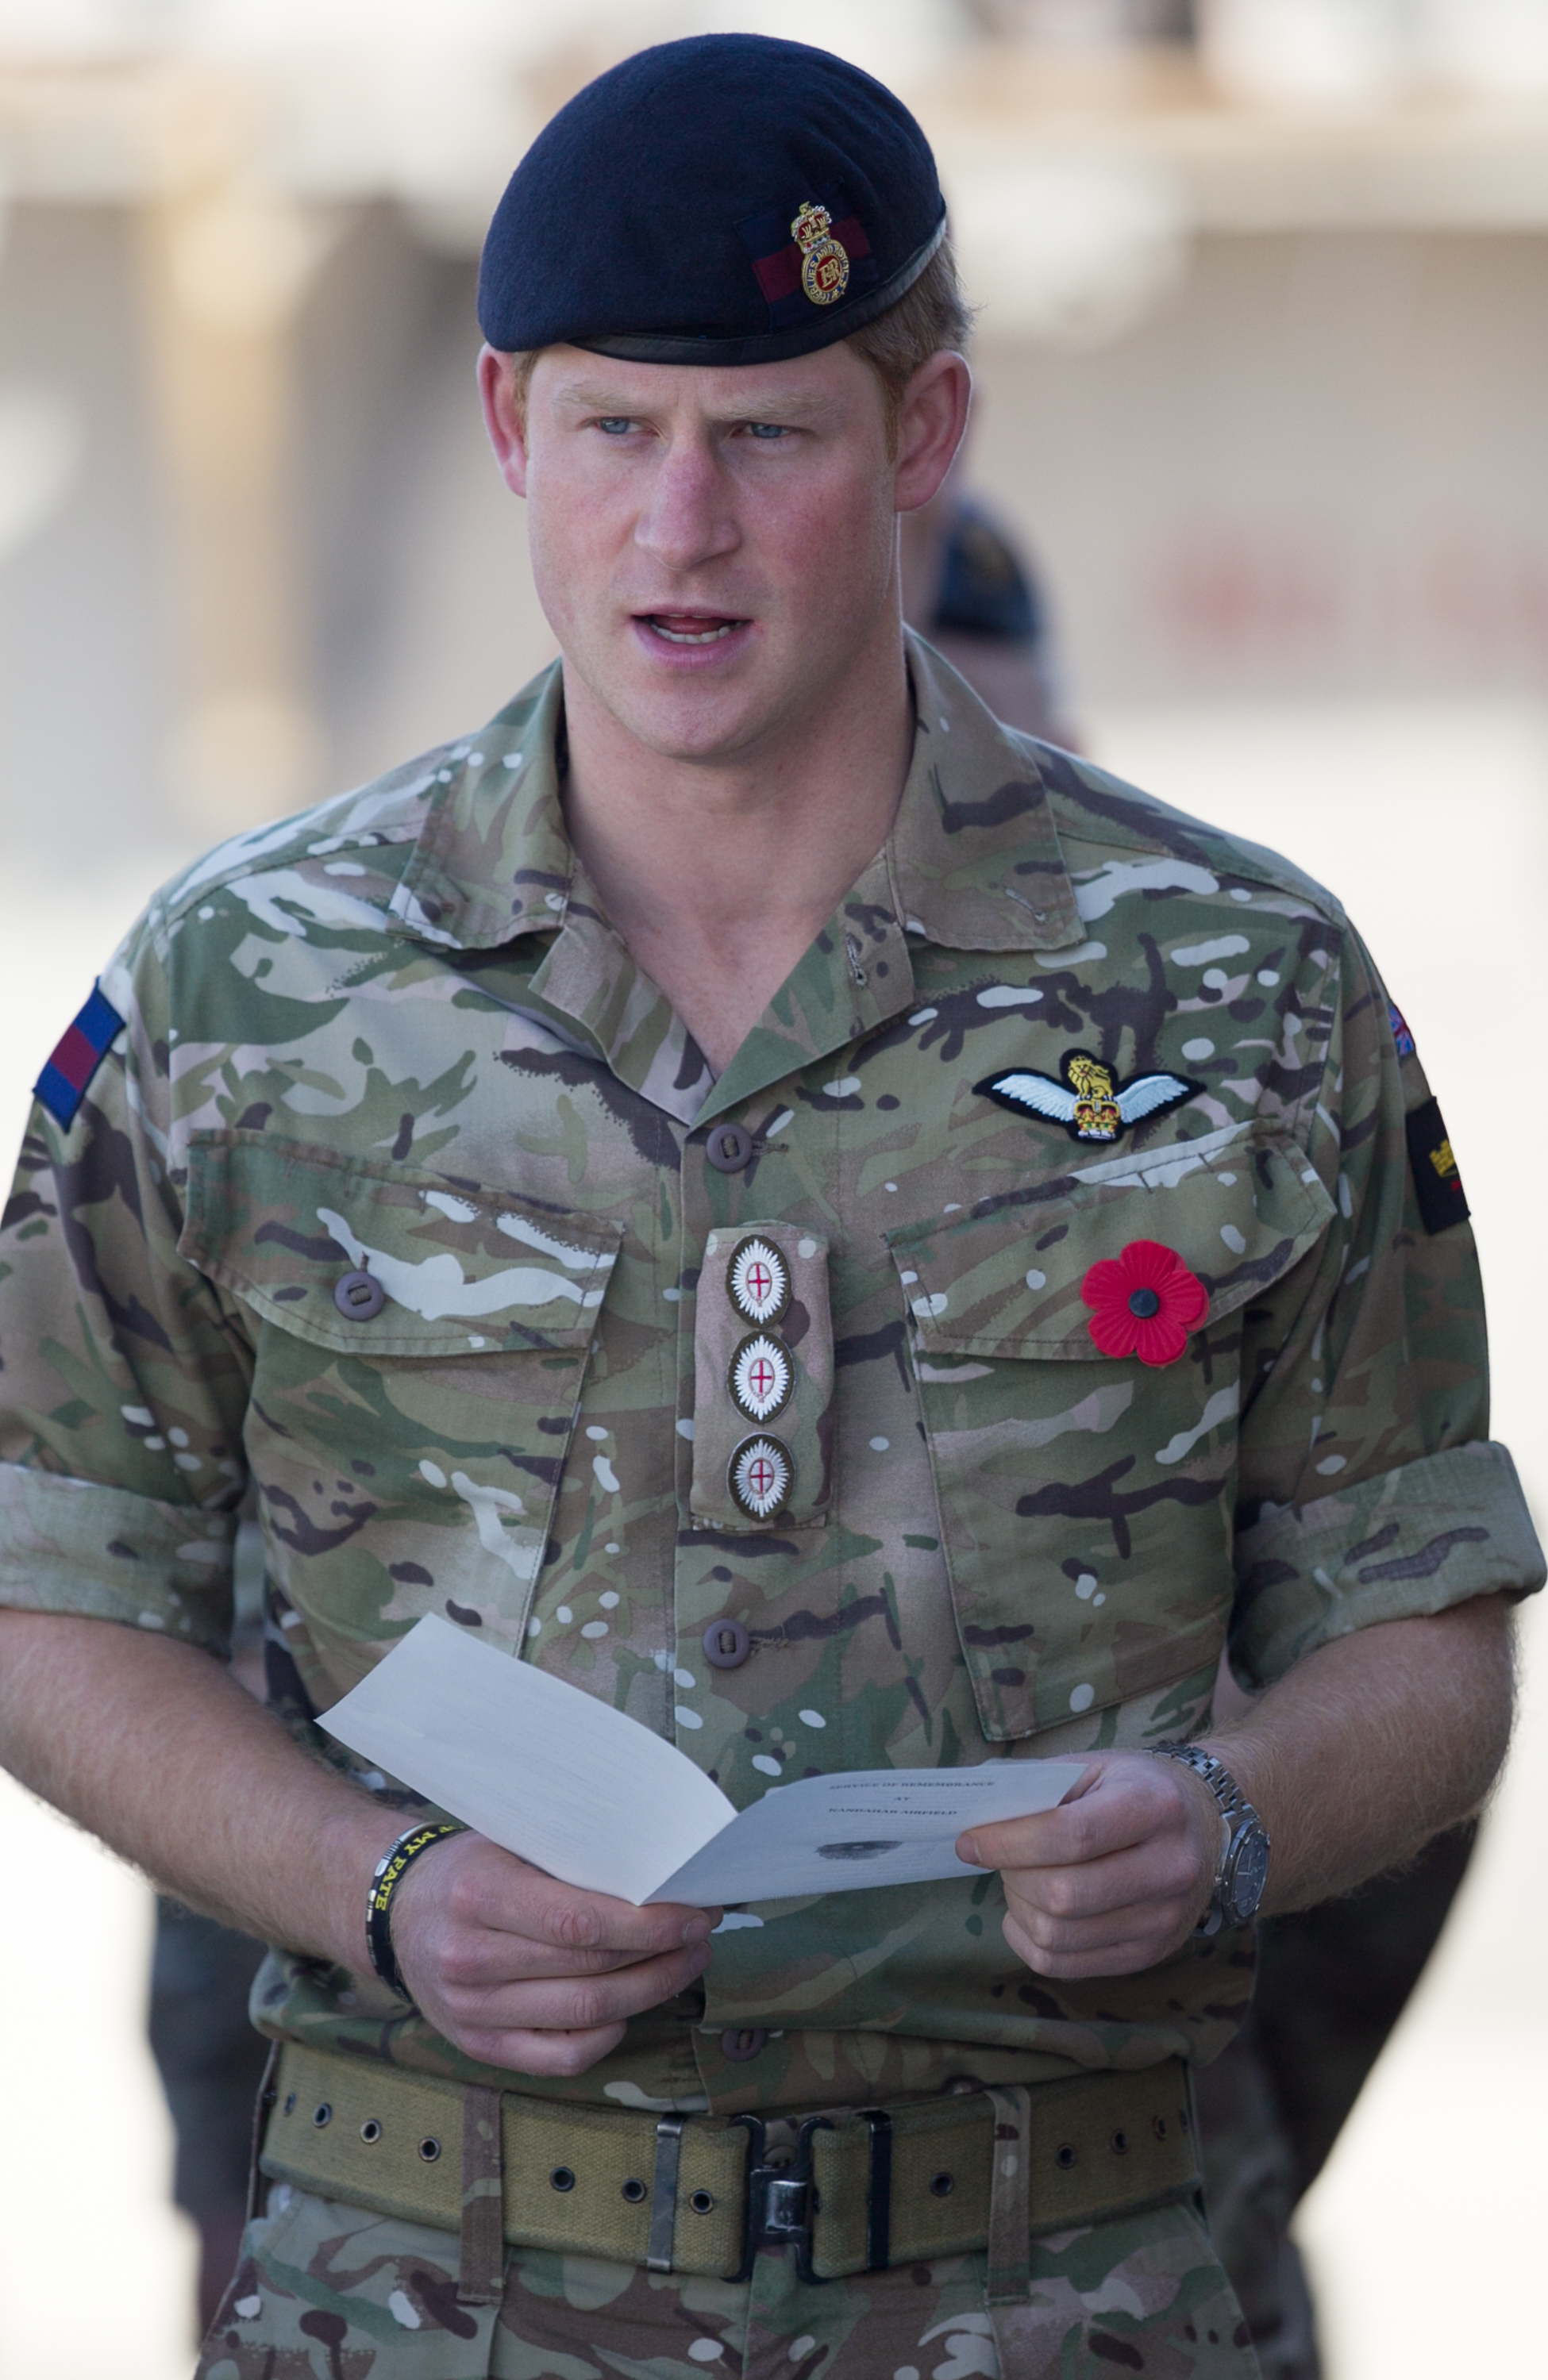 Prince Harry joins British troops and service personal remaining in Afghanistan and also International Security Assistance Force (ISAF) personnel and civilians as they gather for a Remembrance Sunday service at Kandahar Airfield November 9, 2014 in Kandahar, Afghanistan.